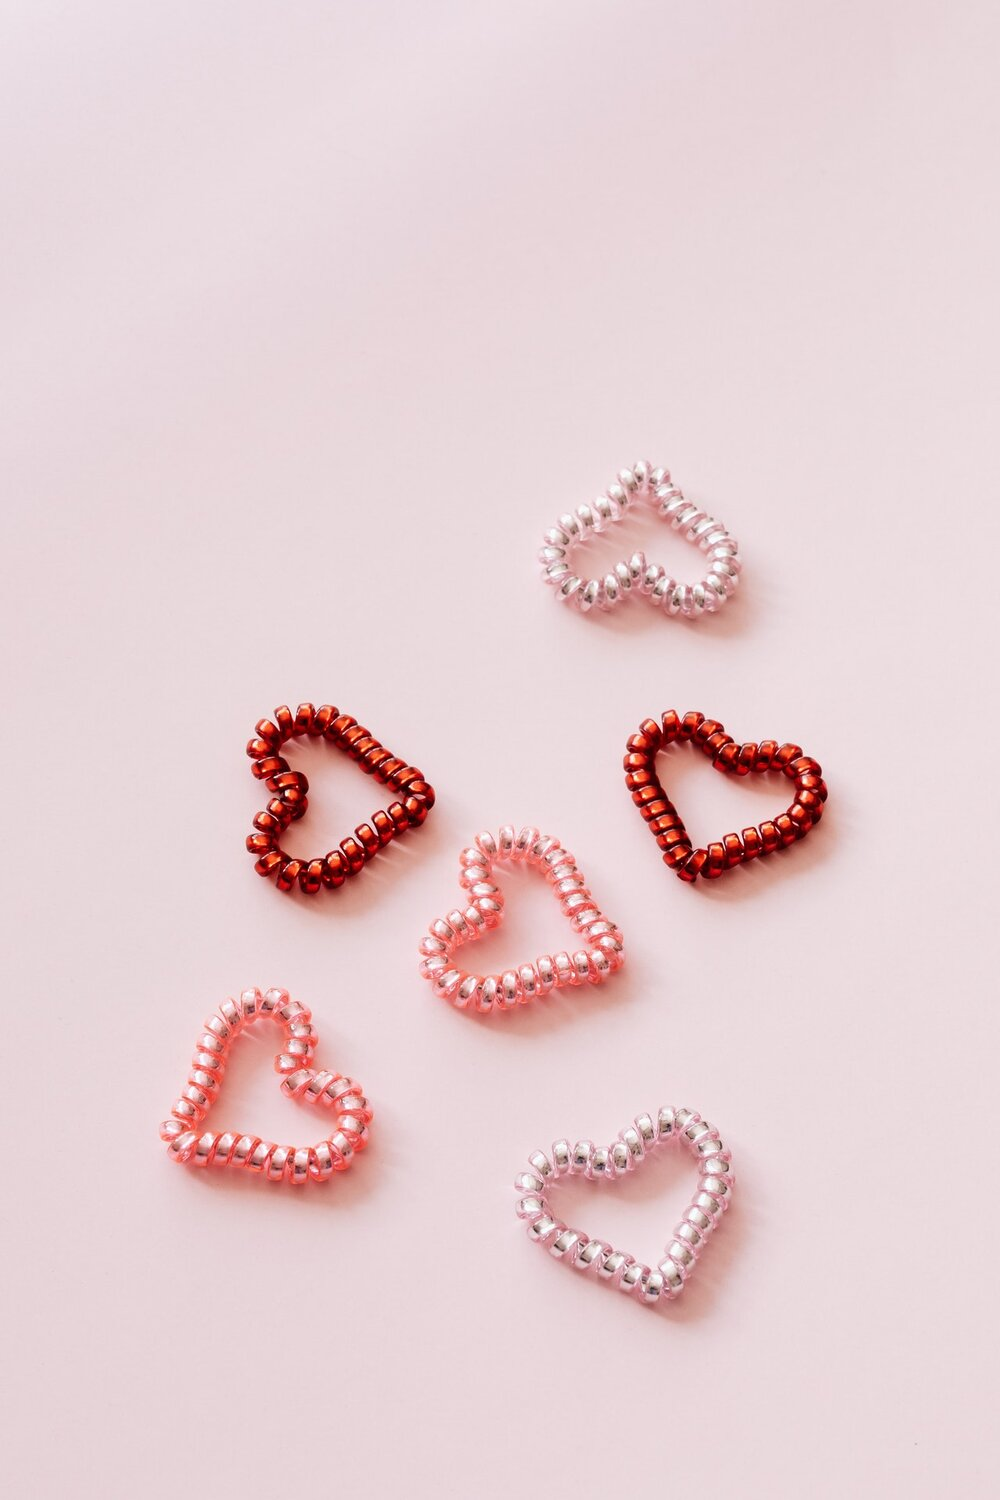 Vertical photo of six scattered heart shaped coils by Karolina Grabowska from Pexels